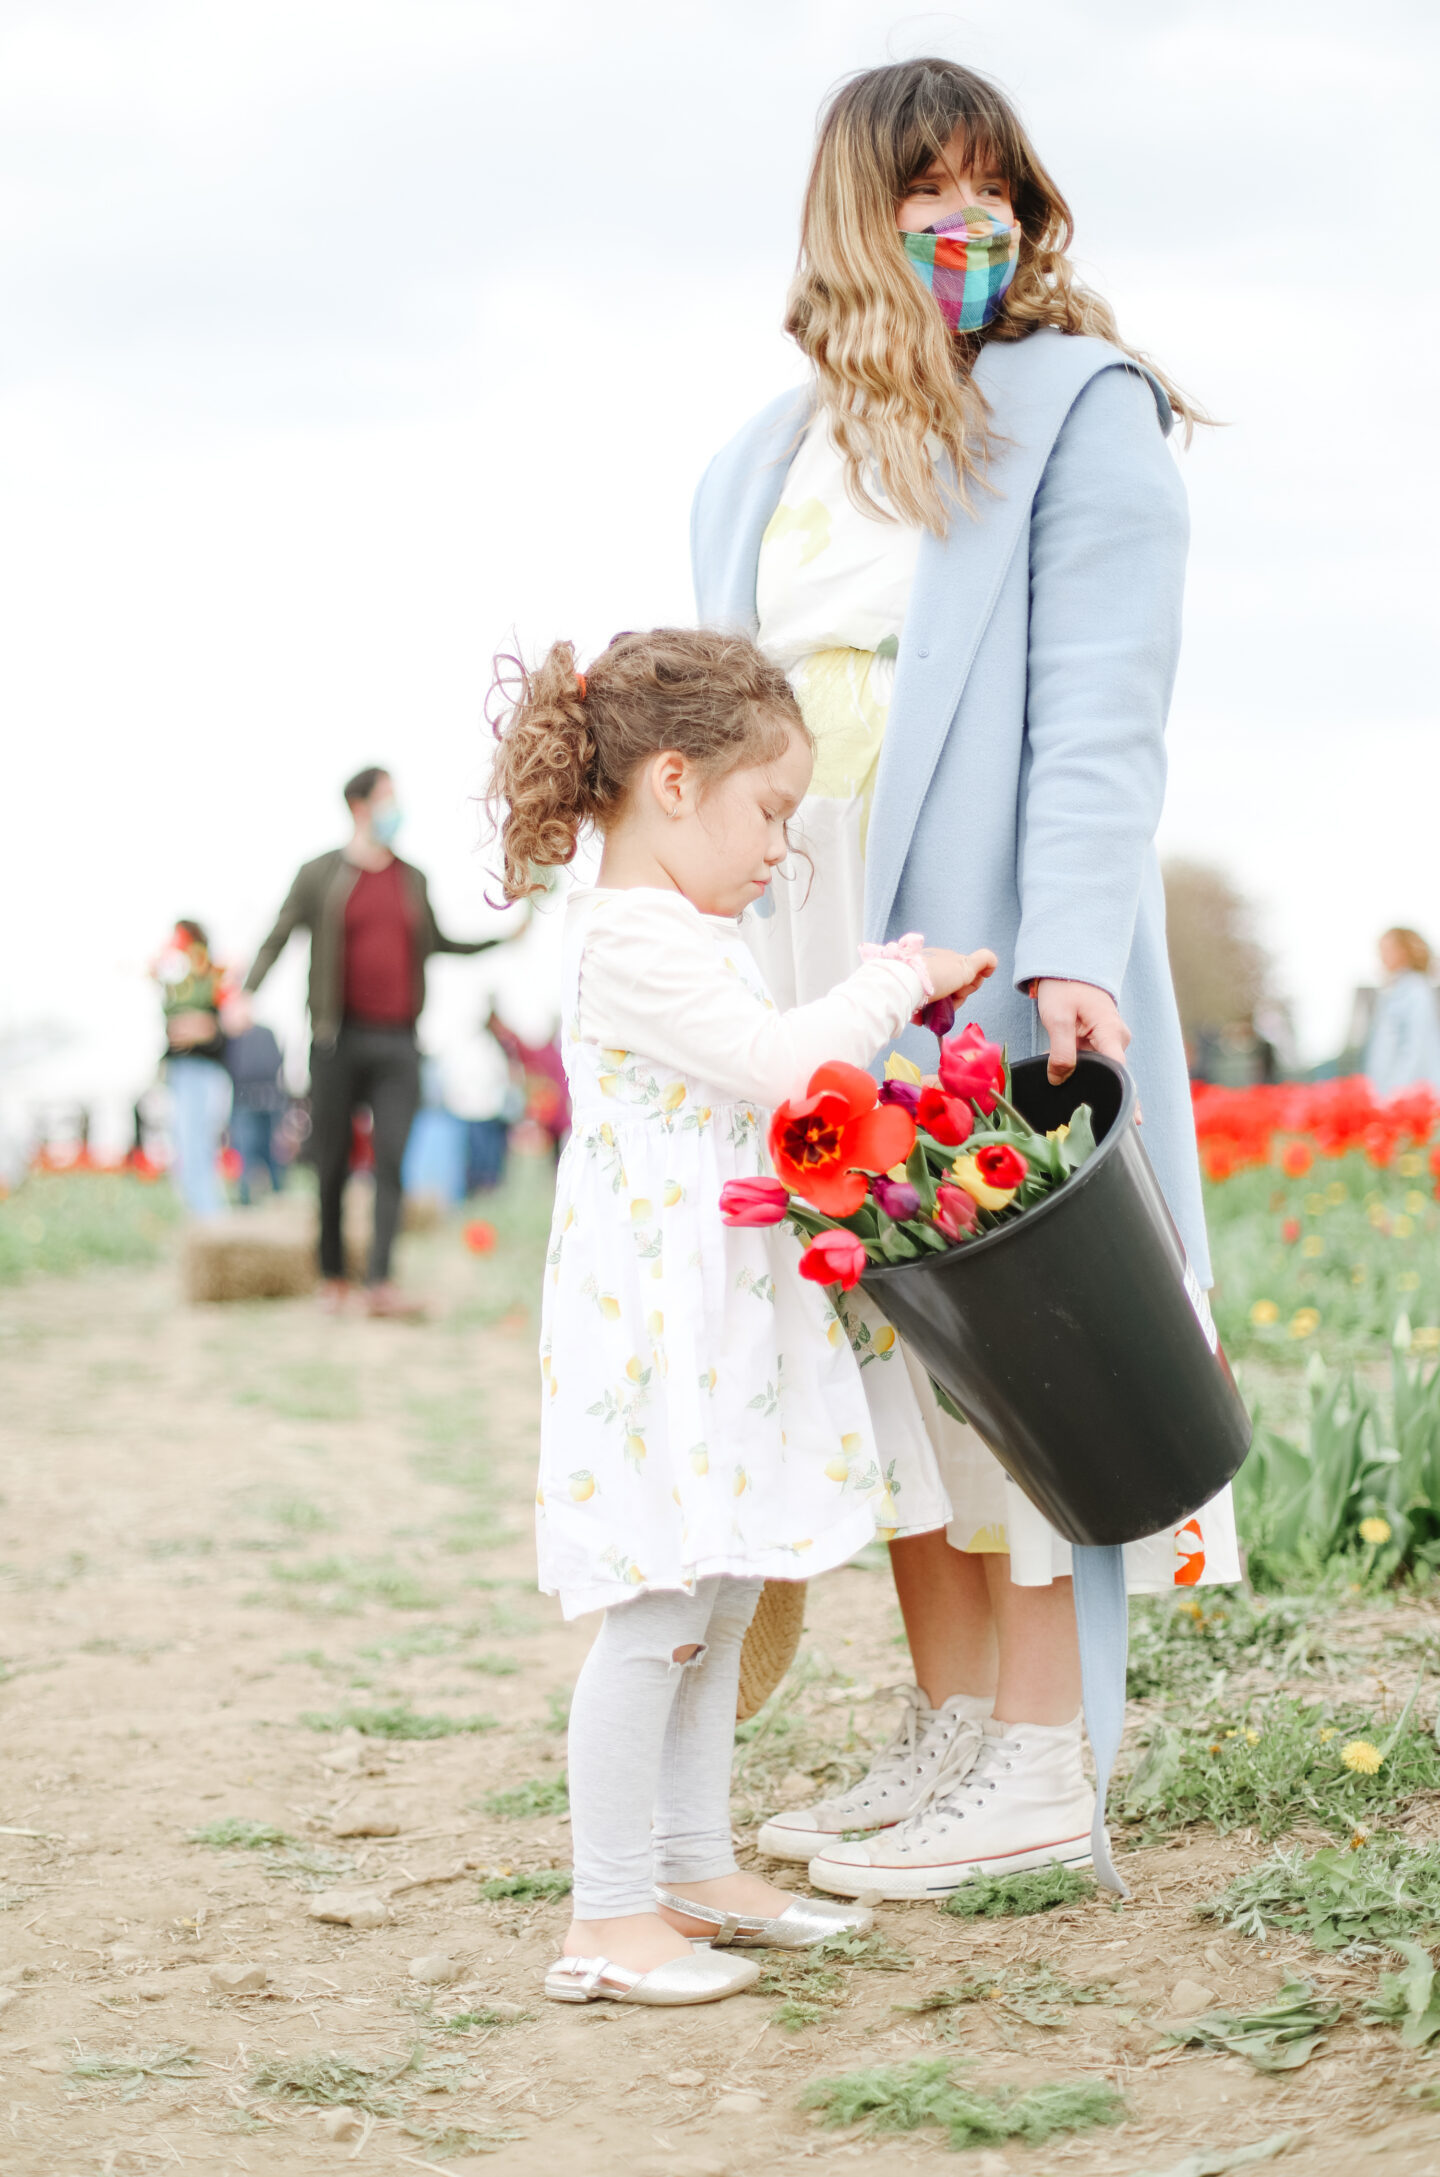 Things to do during spring: Flower field trip